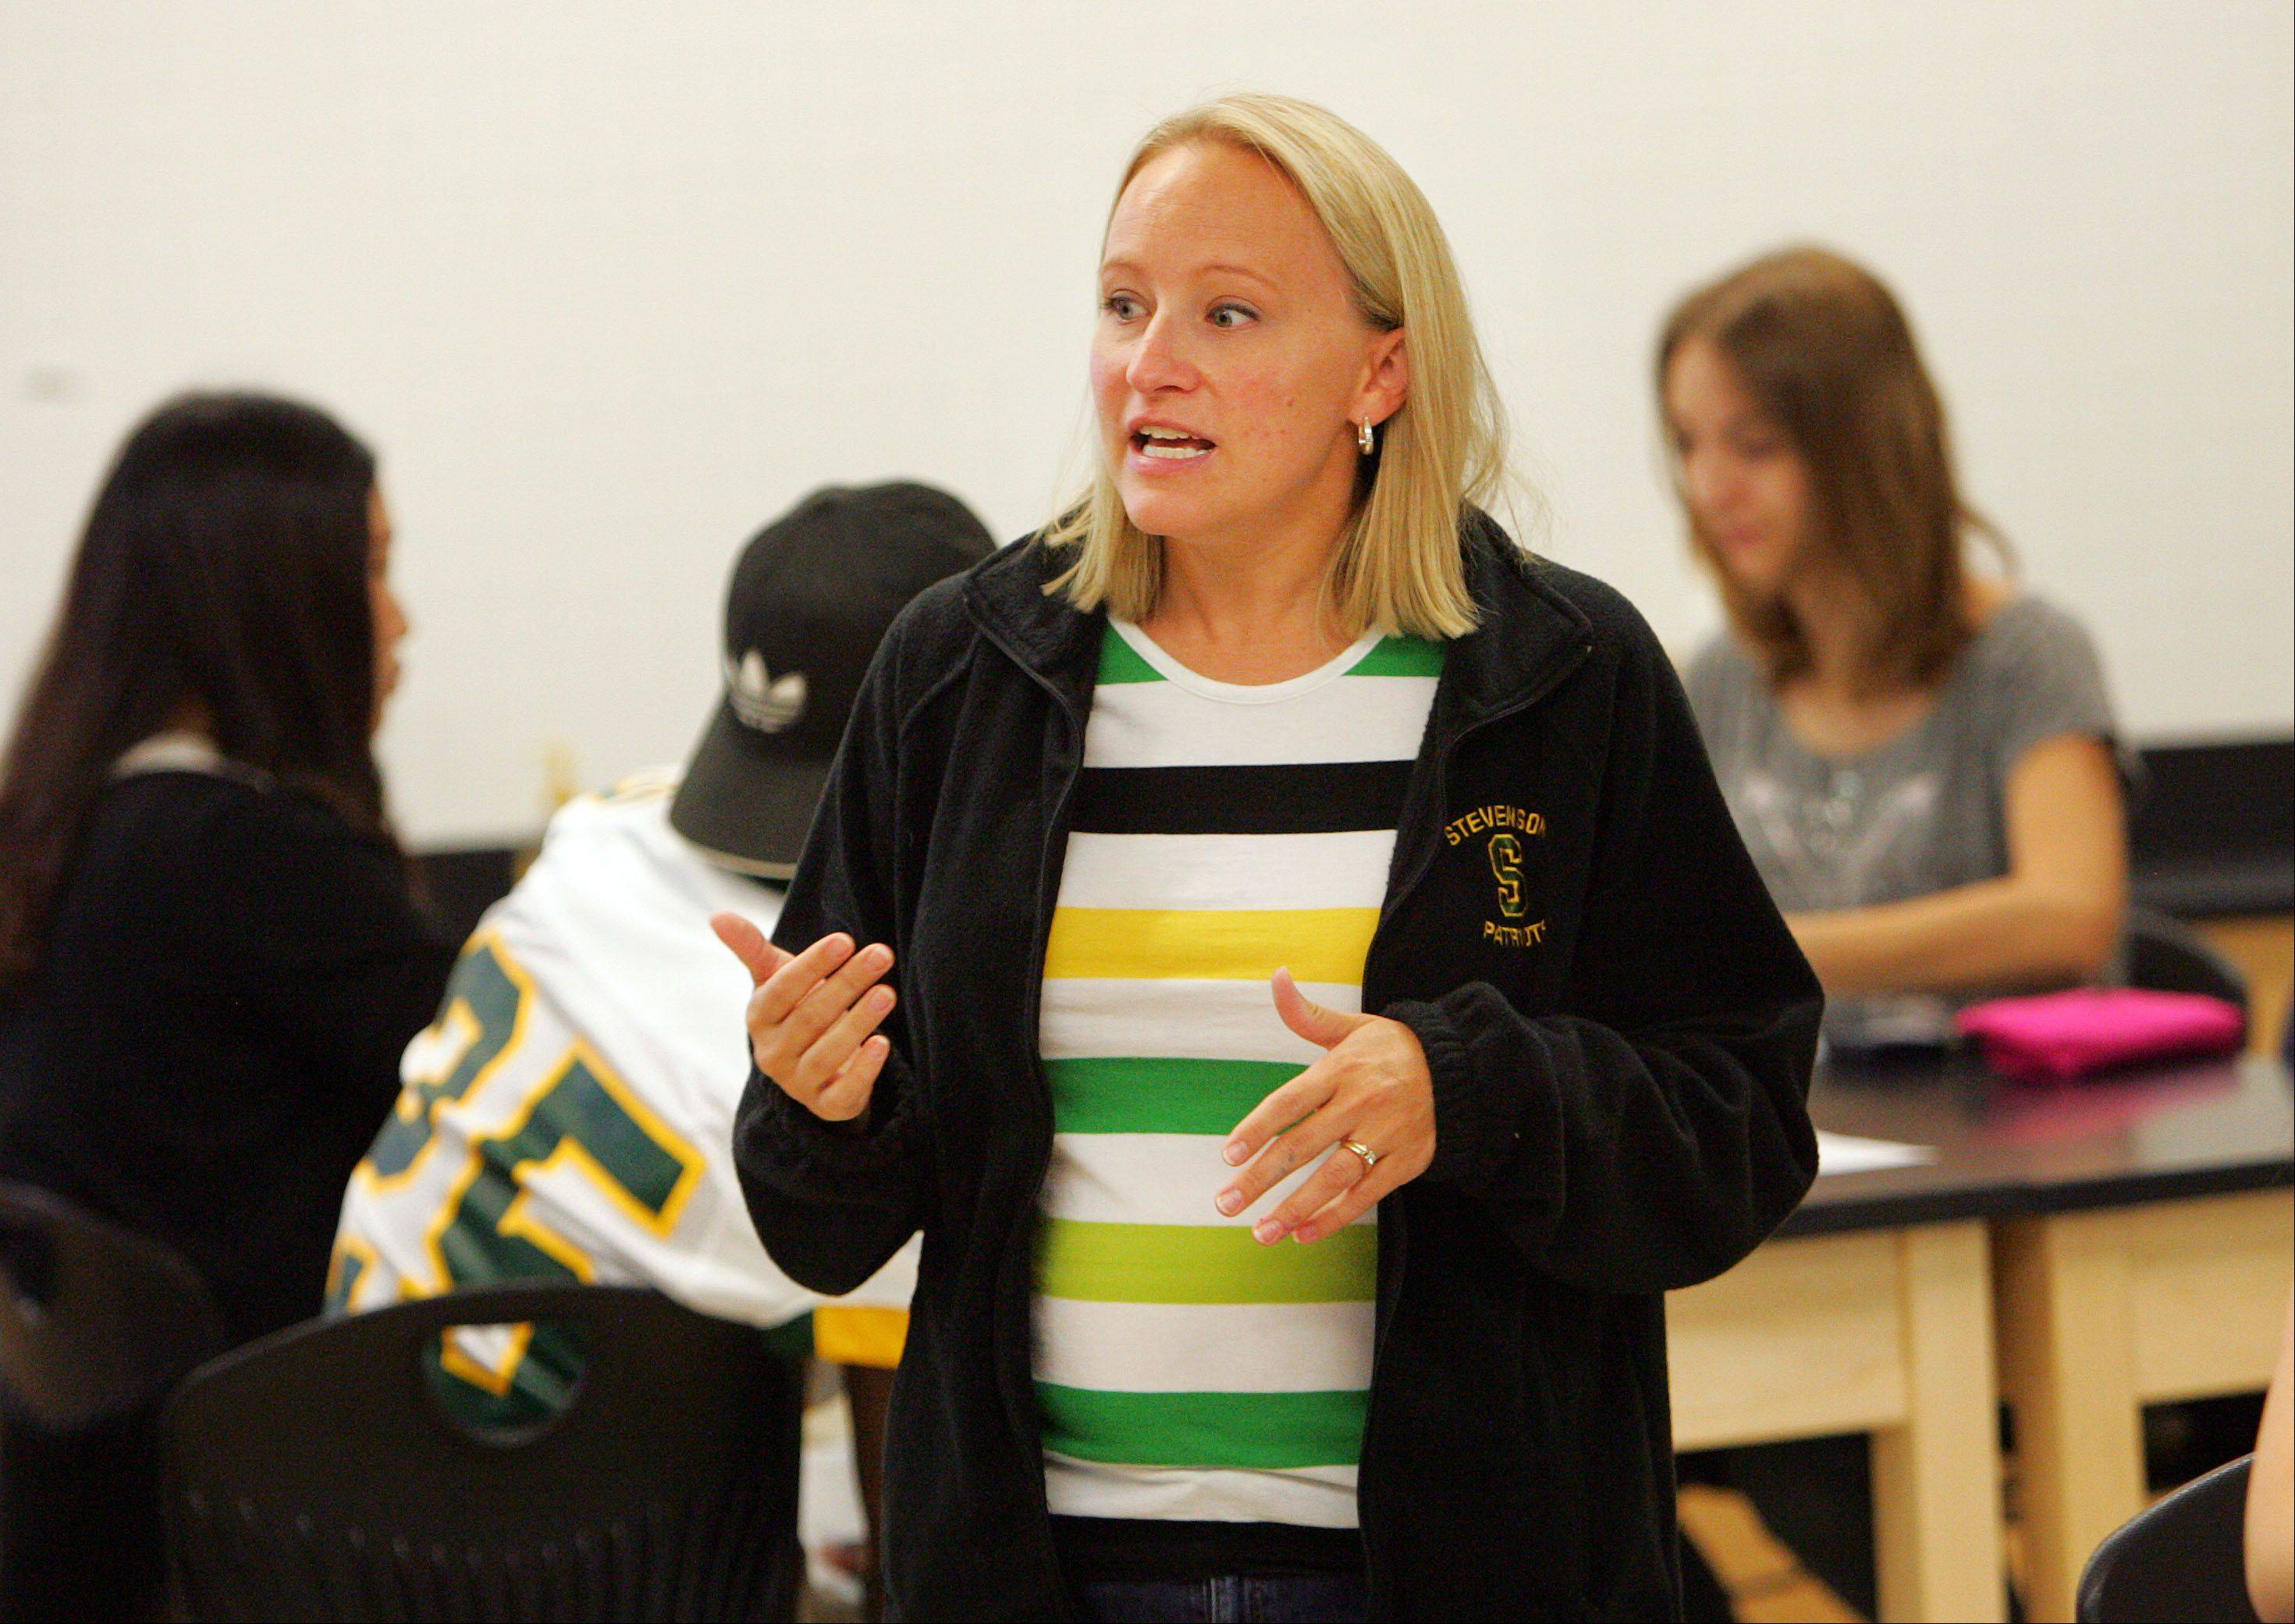 College prep biology teacher Lill Lisius runs her class at Stevenson High School in Lincolnshire.